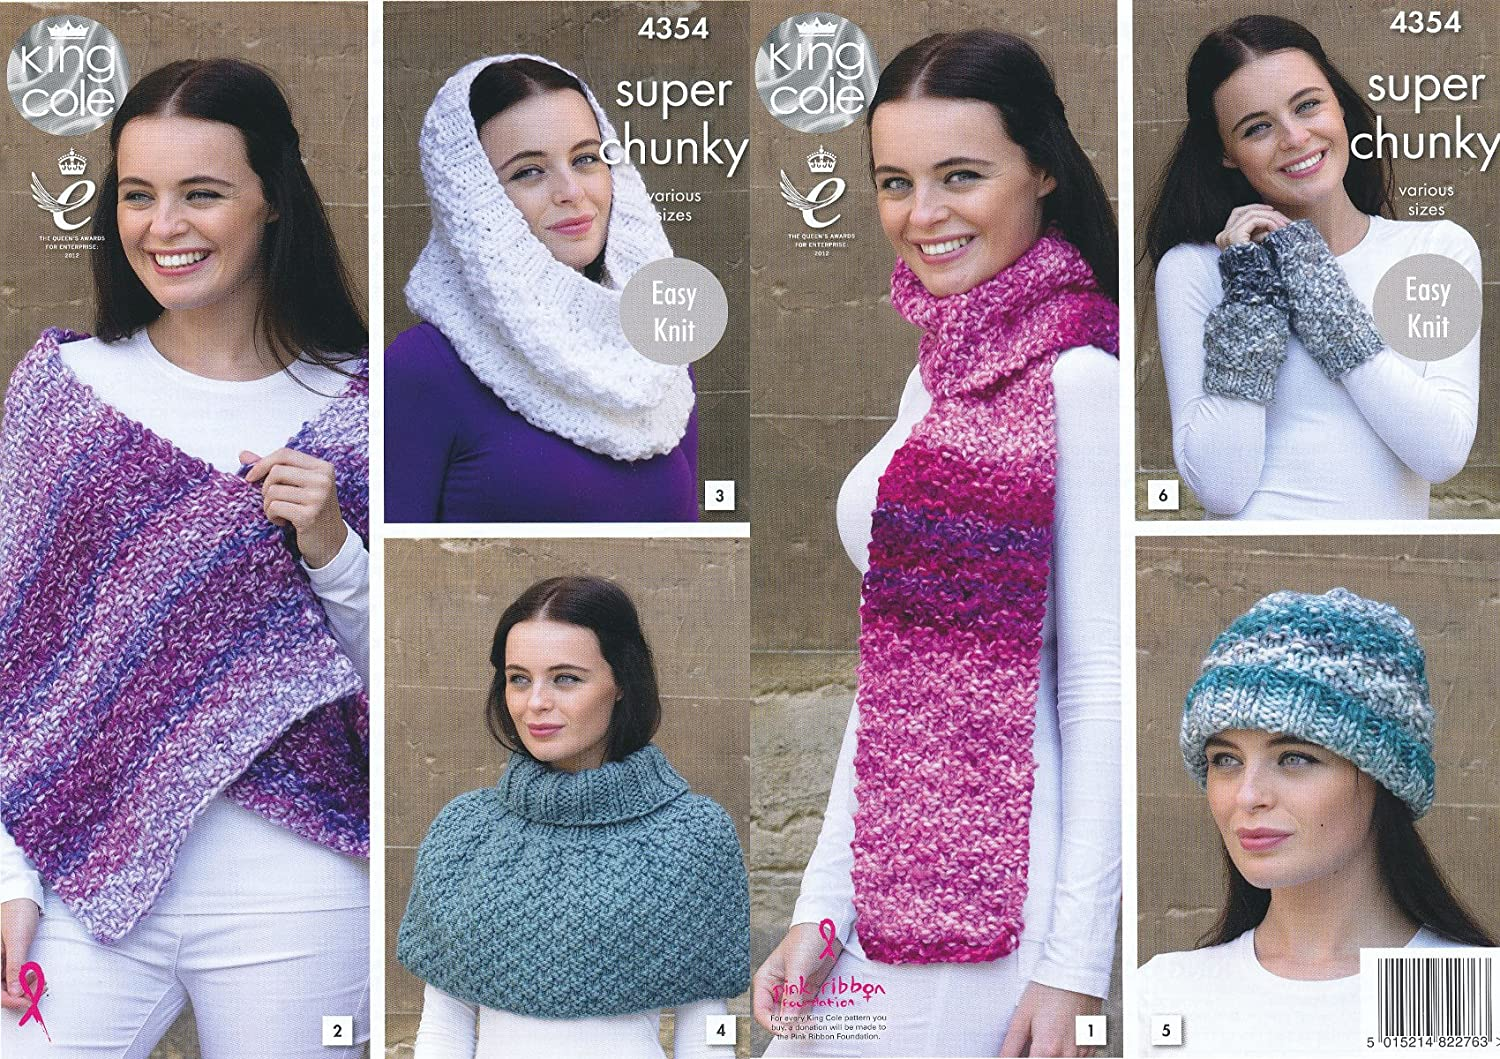 7b4676a4c King Cole Ladies Super Chunky Knitting Pattern Scarf Shoulder Wrap Snood  Hat   Wrist Warmers (4354)  Amazon.co.uk  Kitchen   Home